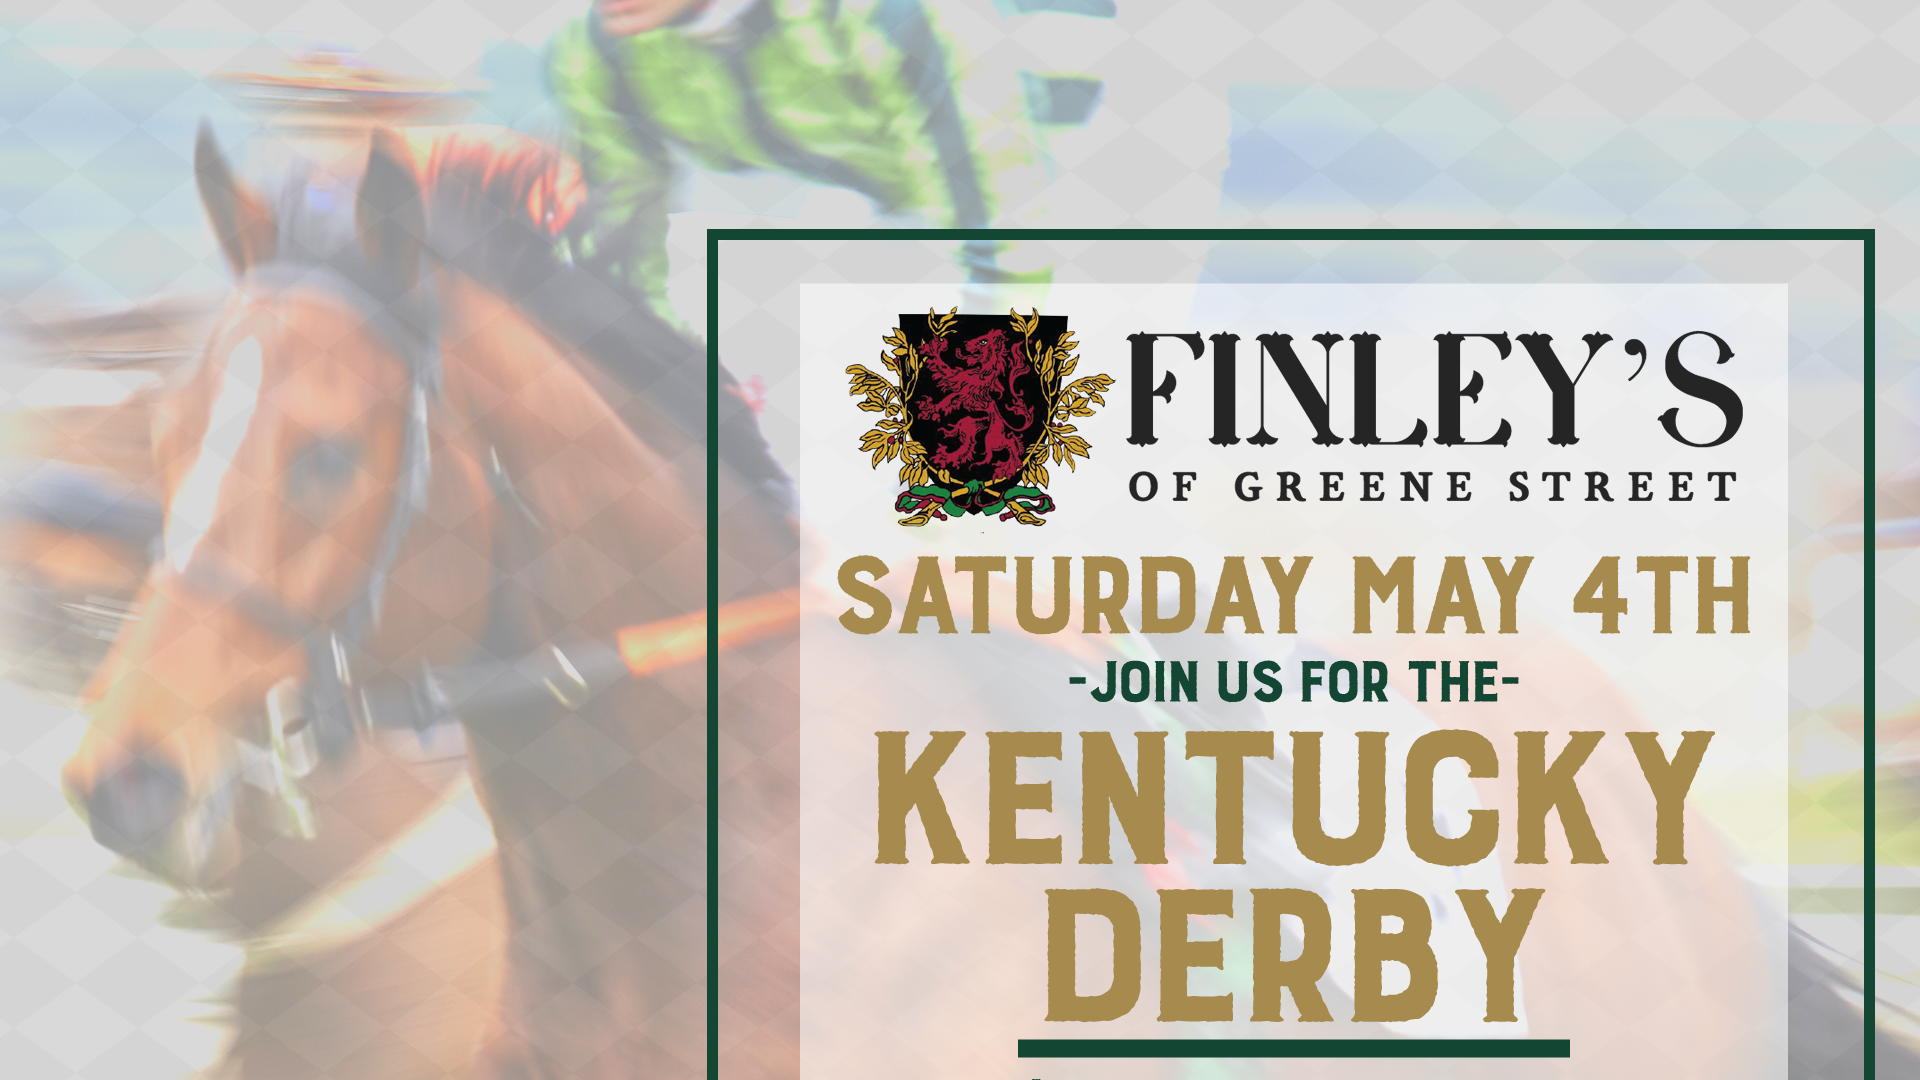 A flyer for the Kentucky Derby on May 4th.